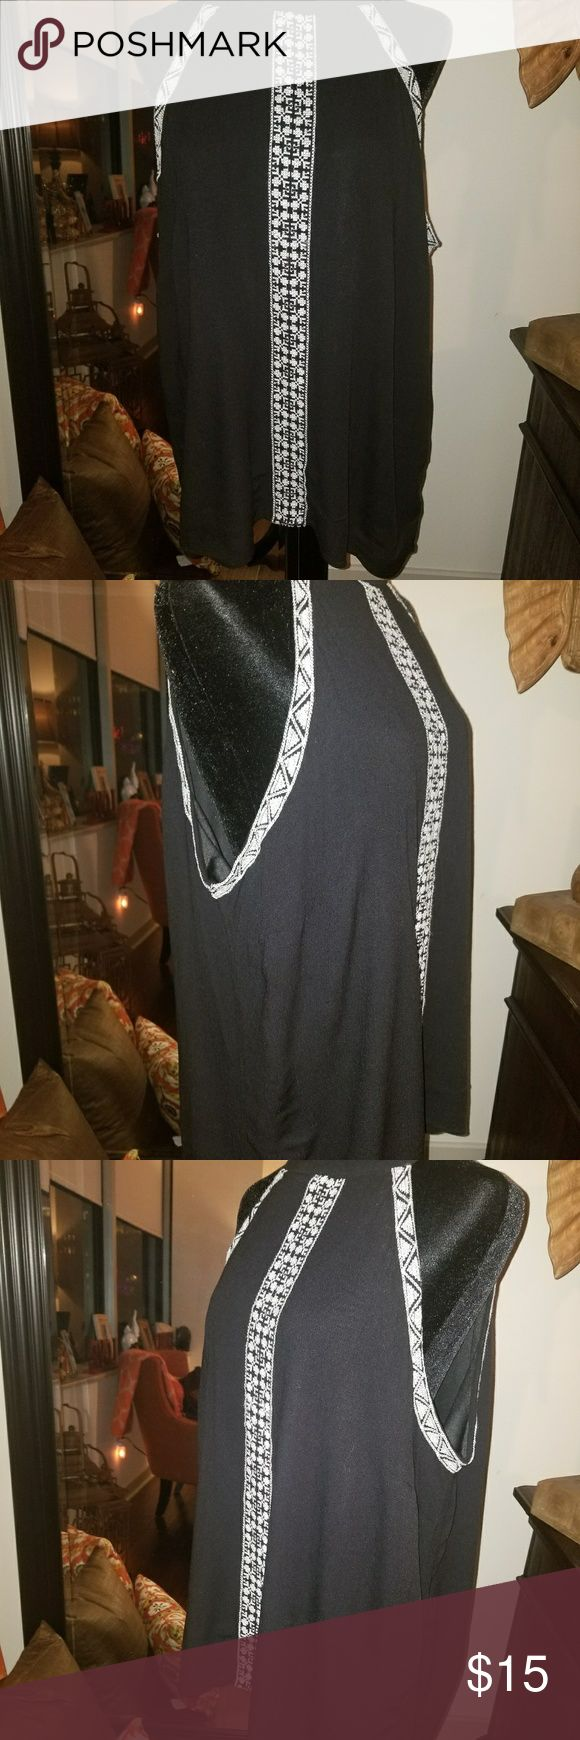 Black & Cream Cami Top Black and Cream Cami Top. Will look nice alone, under a cardigan or a suit jacket! Tops Camisoles